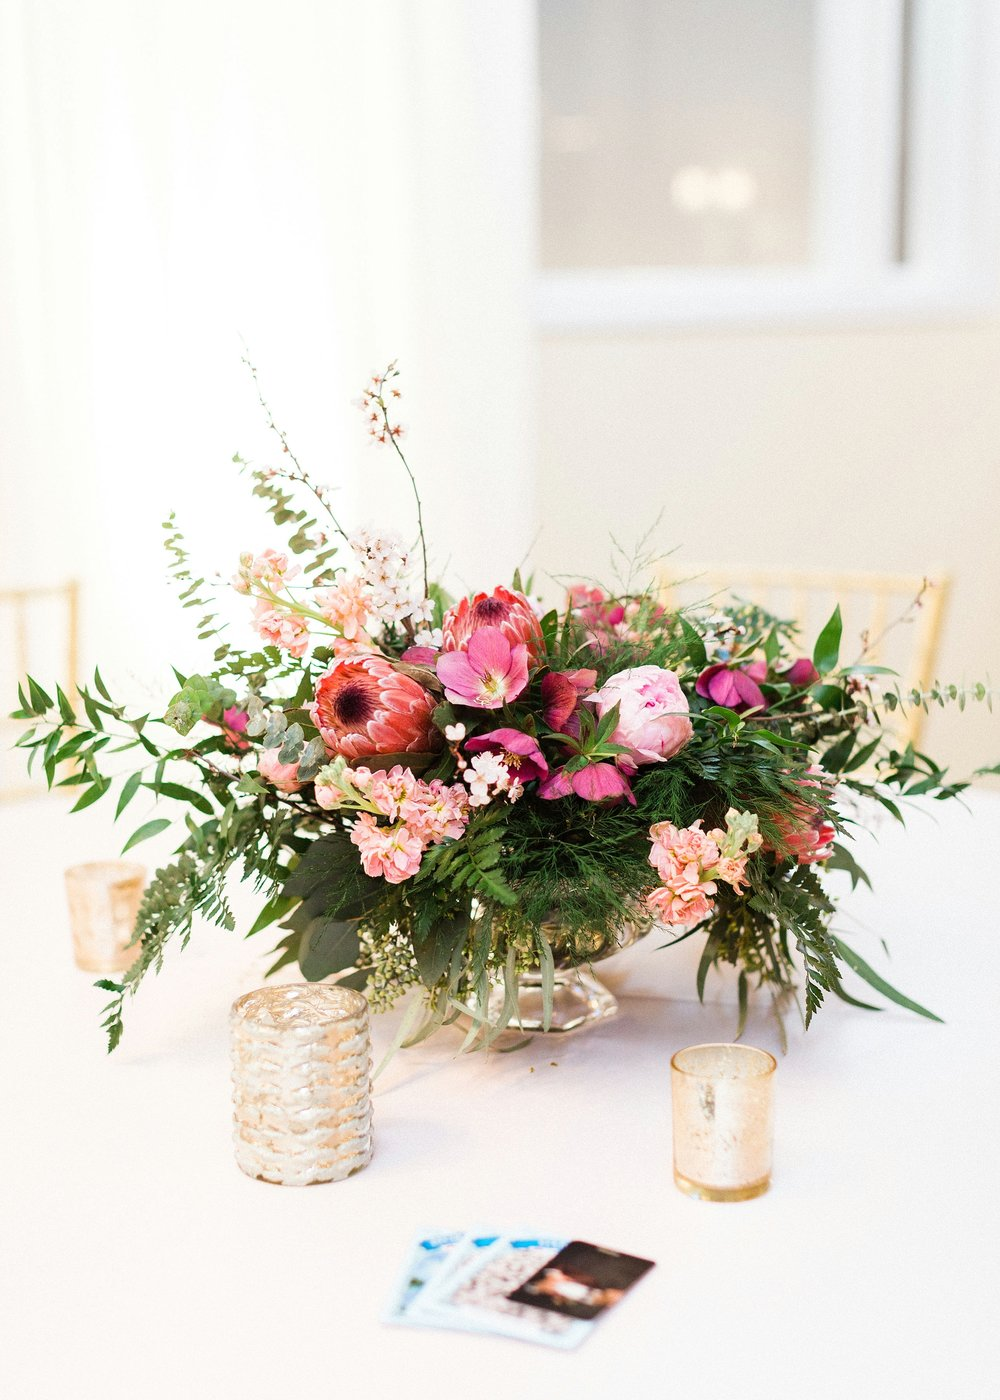 Photo by Annie Timmons Photography, Flowers by Jenny's Projects